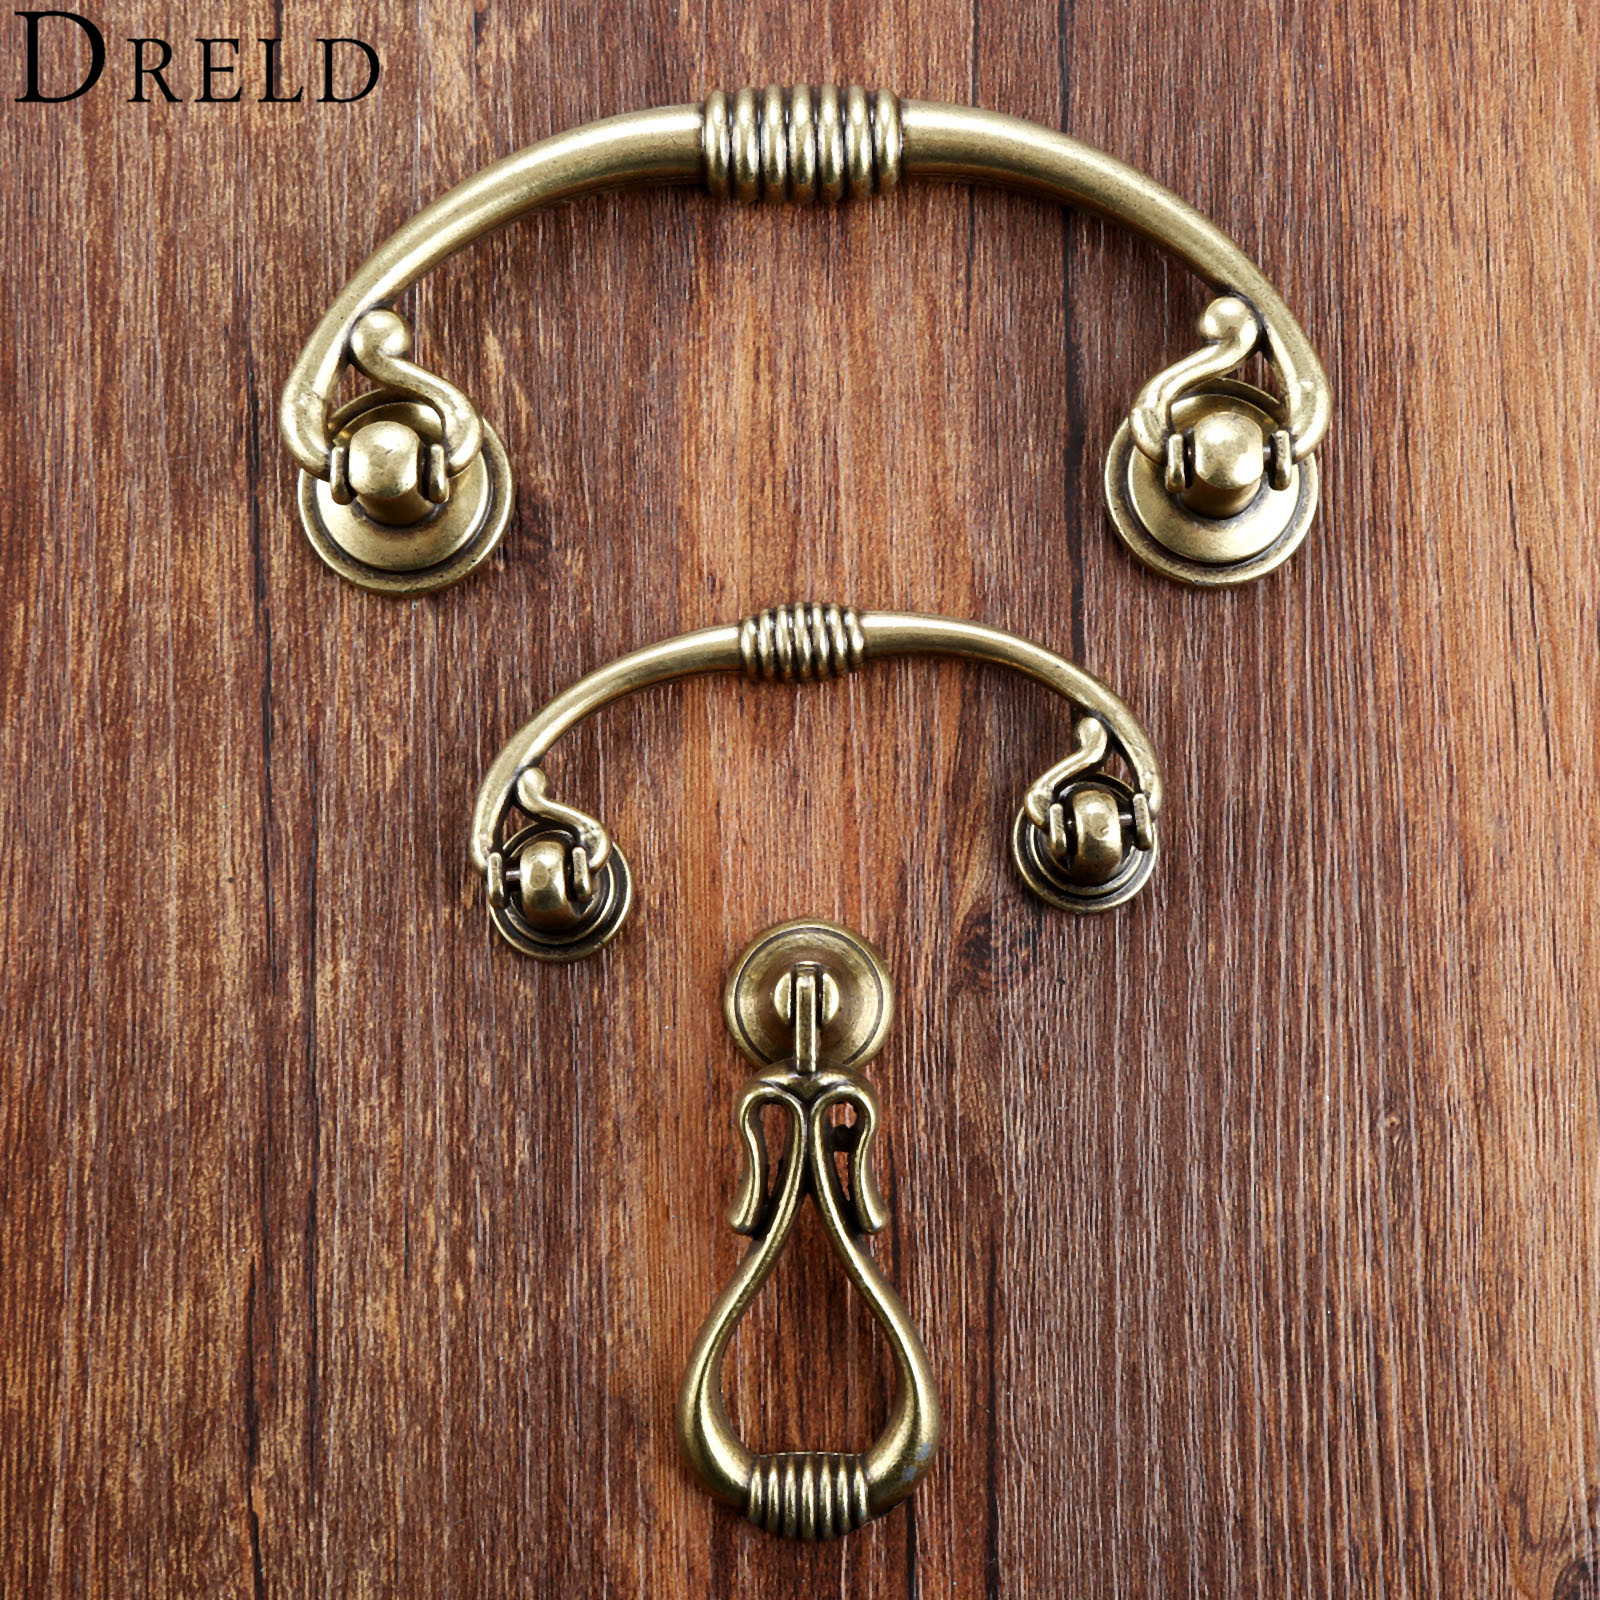 DRELD 2018 Antique Furniture Handles Cabinet Knobs and Handles Drawer Door Pull Cupboard Handle Kitchen Knob Furniture Fittings 1 pair 96mm vintage furniture cupboard wardrobe handles and knobs antique bronze alloy kitchen cabinet door drawer pull handle